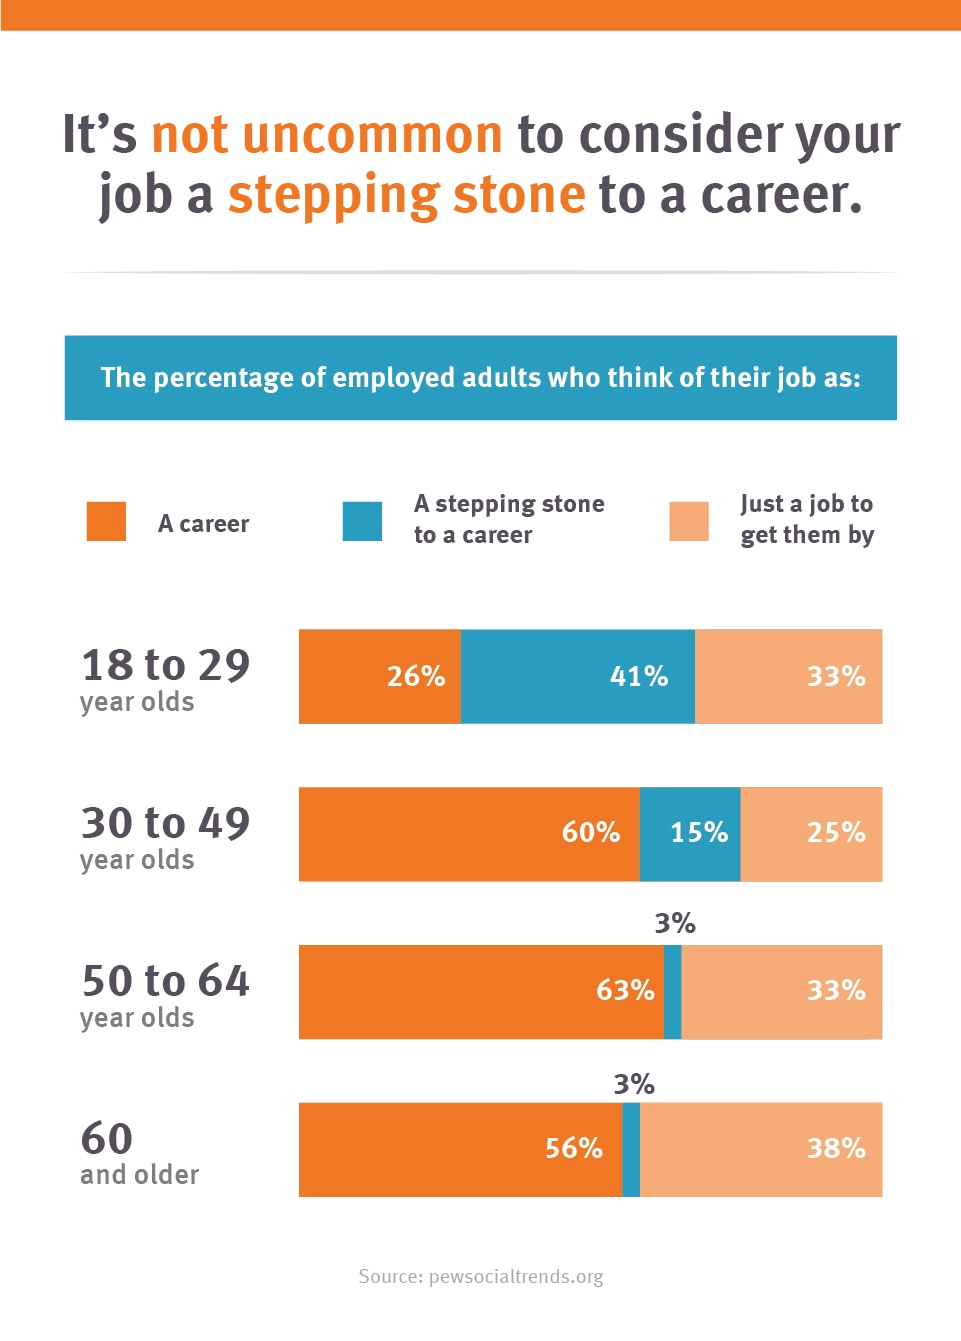 job as stepping stone to a career